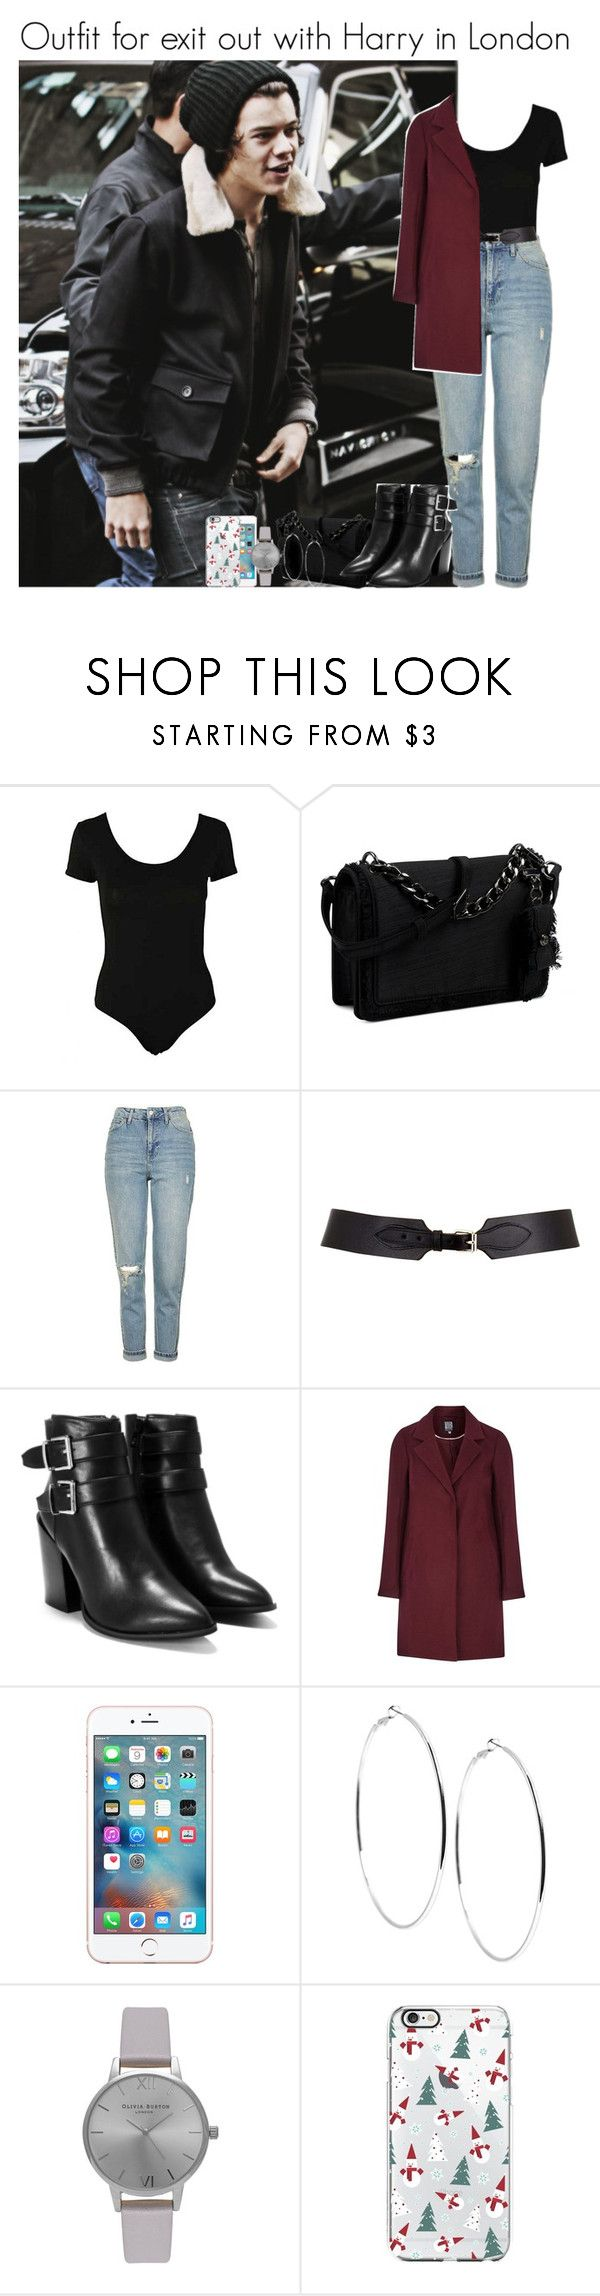 """Outfit for exit out with harry in London"" by louise-smiths ❤ liked on Polyvore featuring Nine West, Topshop, Maison Boinet, Nasty Gal, GUESS and Olivia Burton"